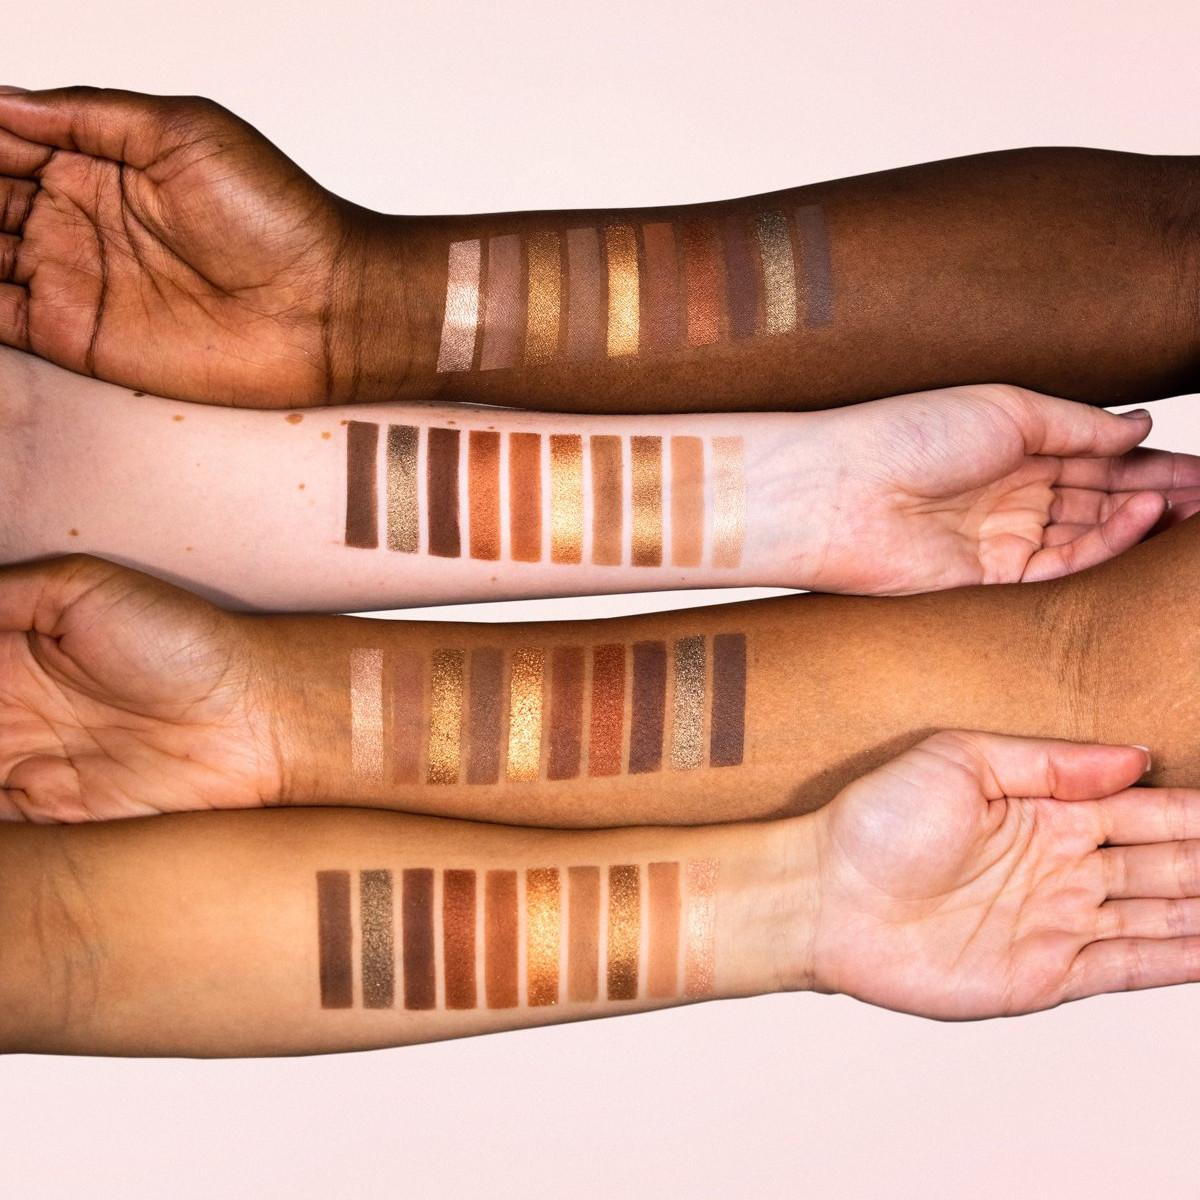 ZOEVA Cosmetics Together We Grow Eyeshadow Palette Arm Swatches